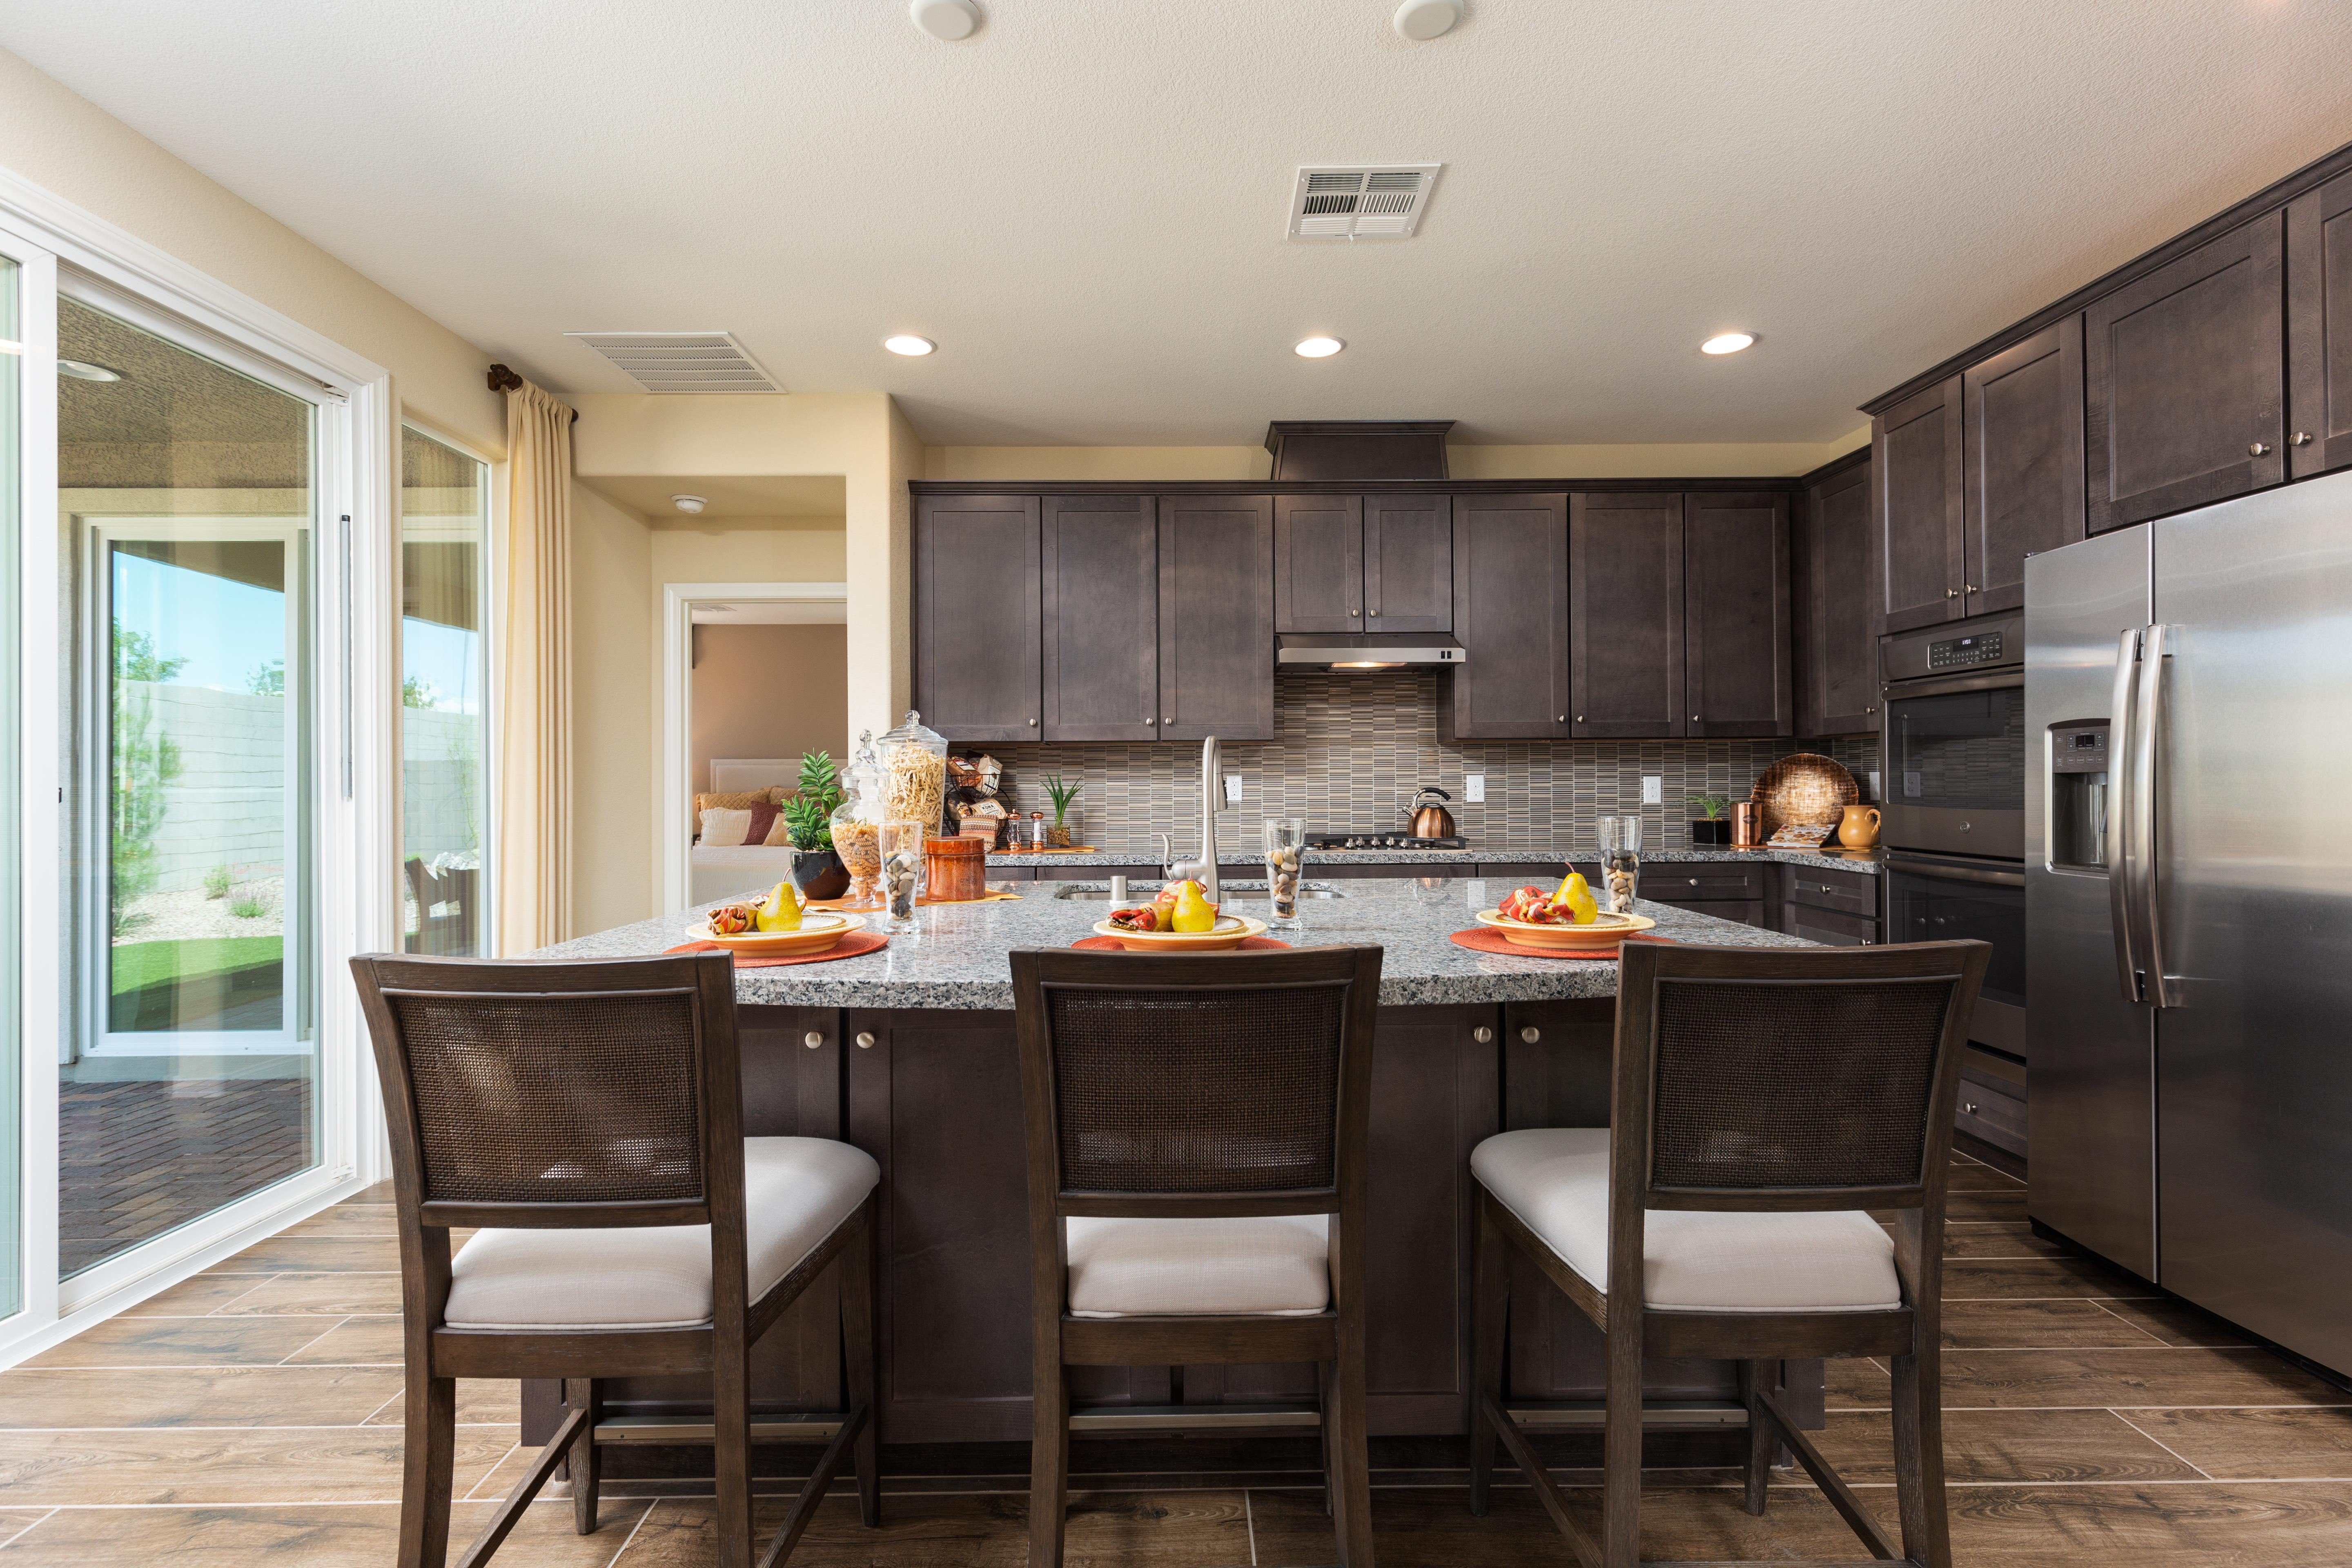 Kitchen featured in the Plan 2 By Storybook Homes in Las Vegas, NV